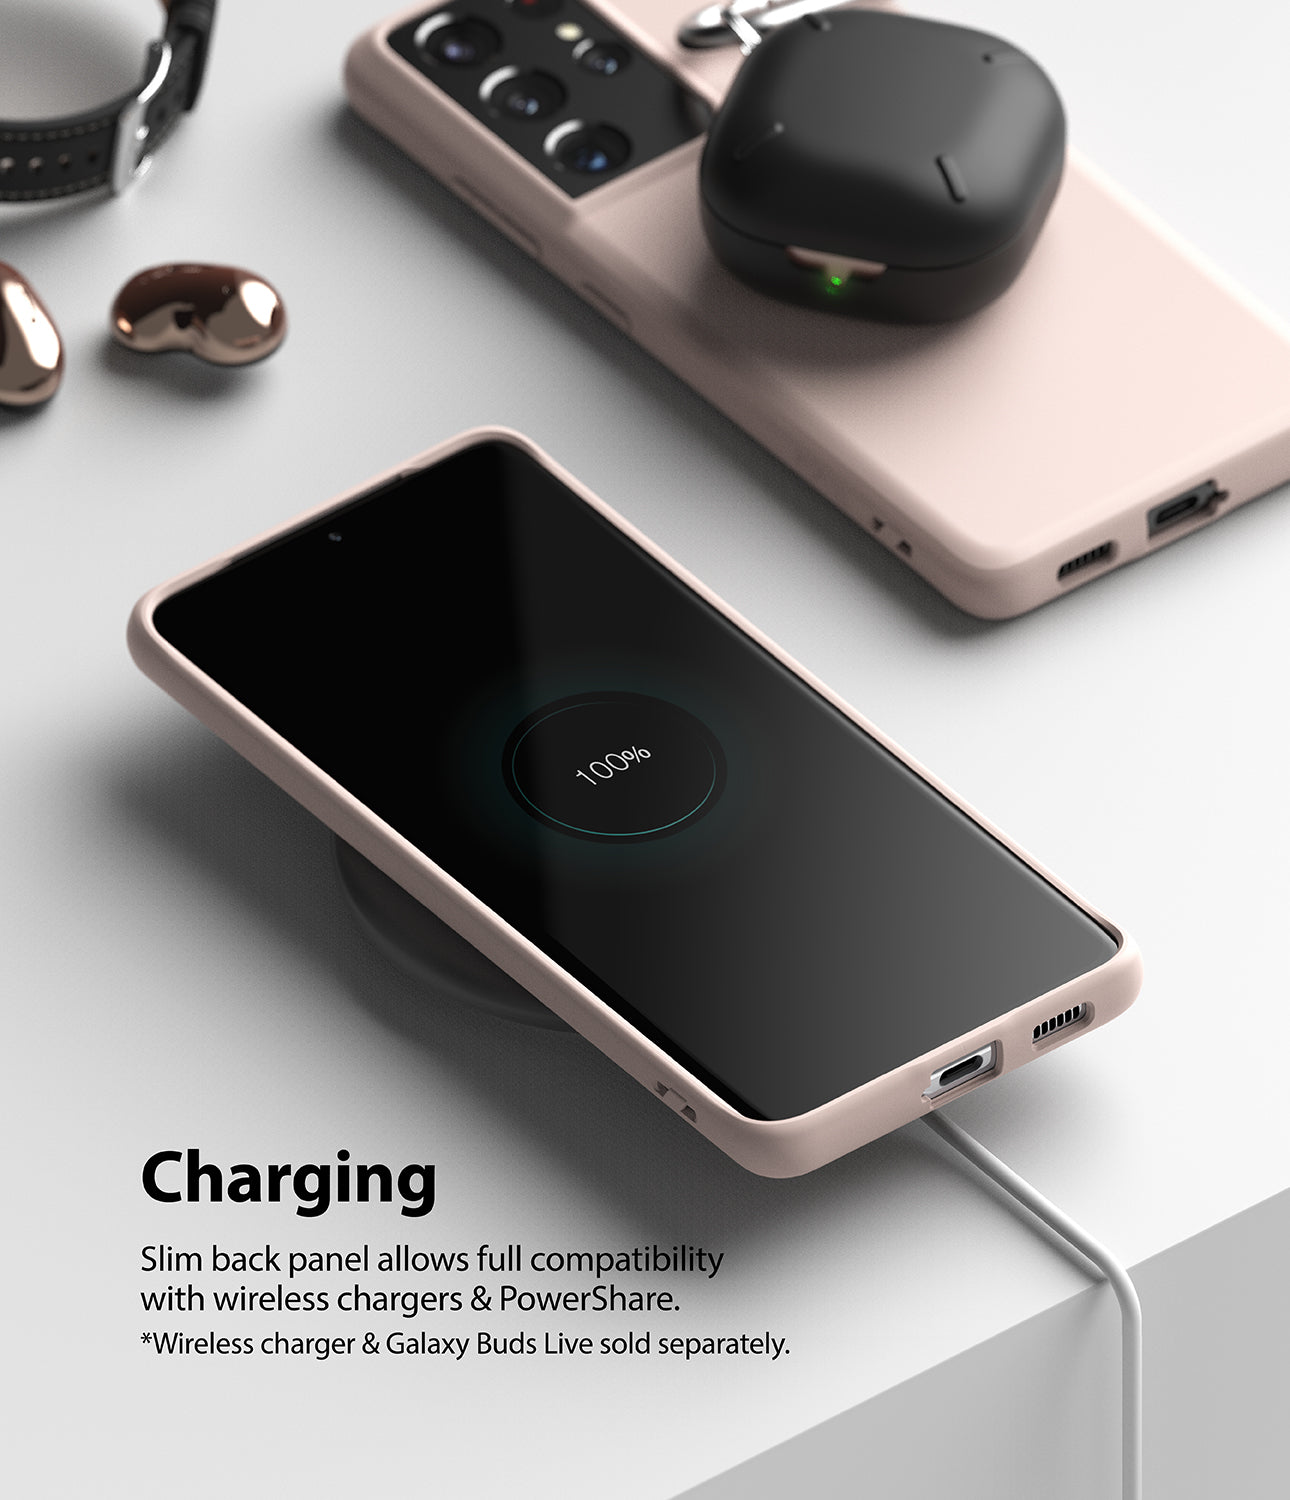 compatible with wireless charging